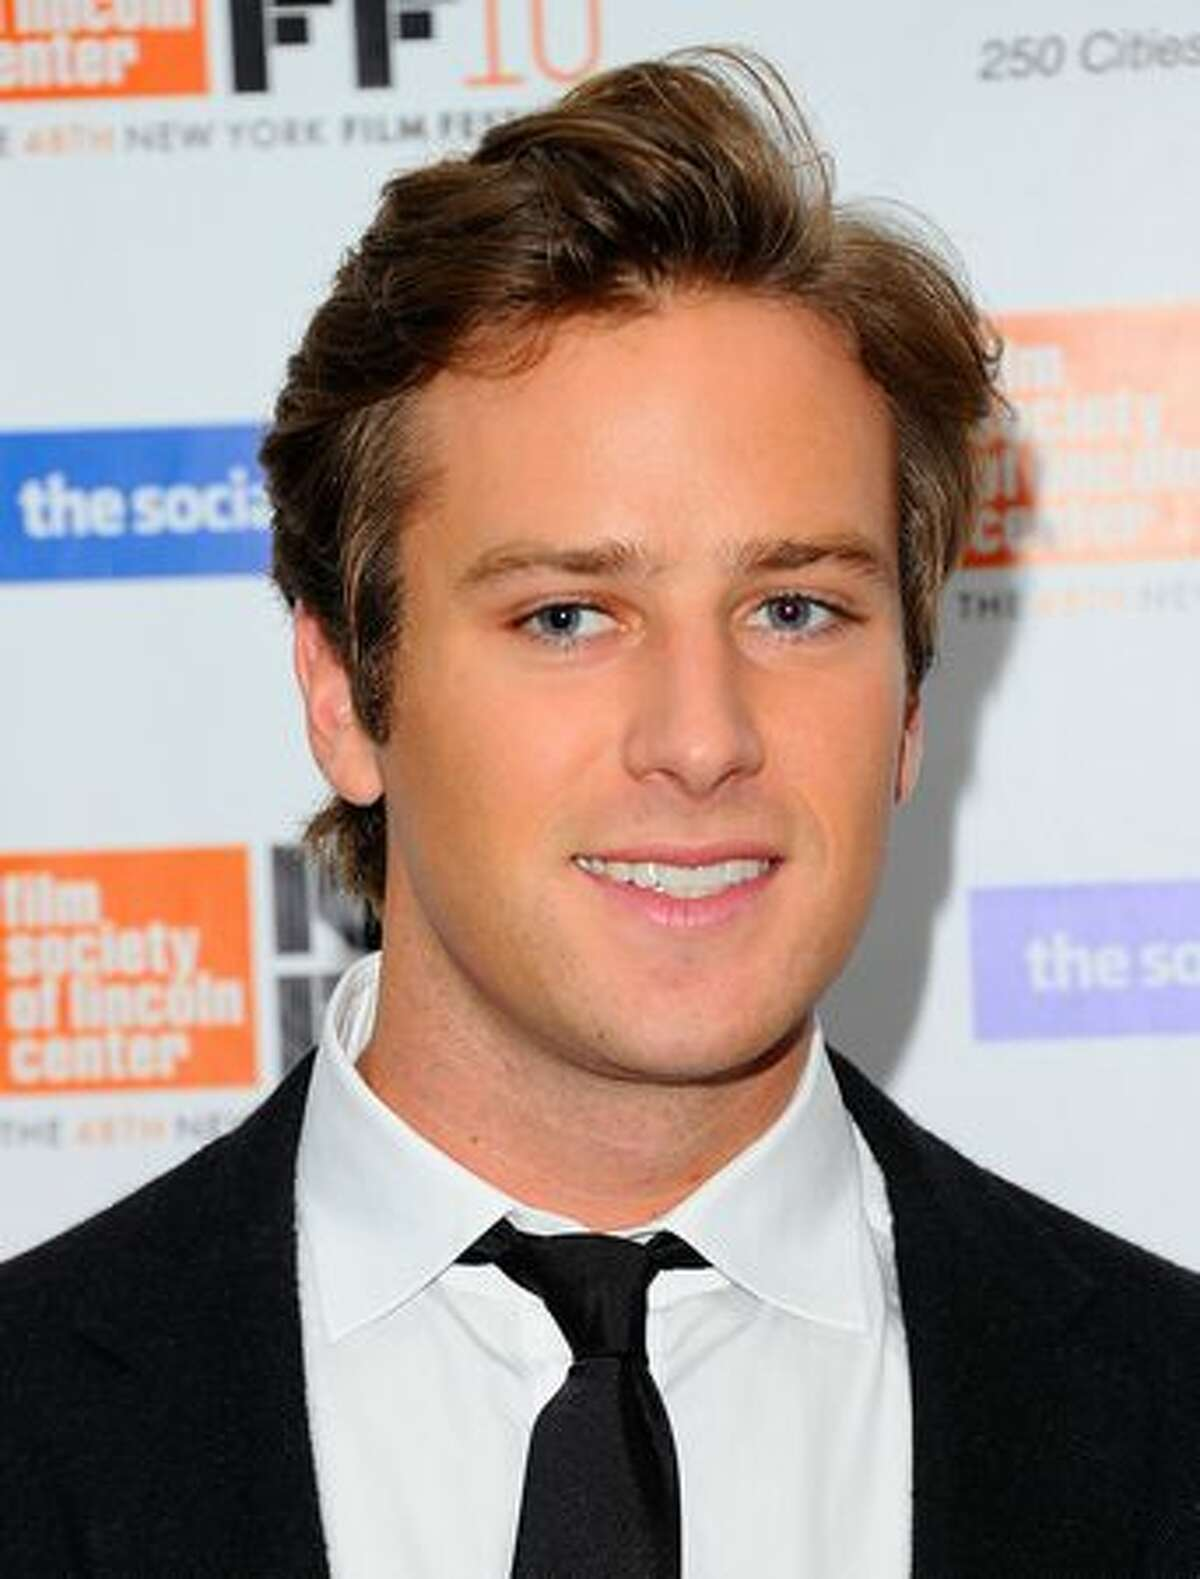 Actor Armie Hammer attends the premiere of